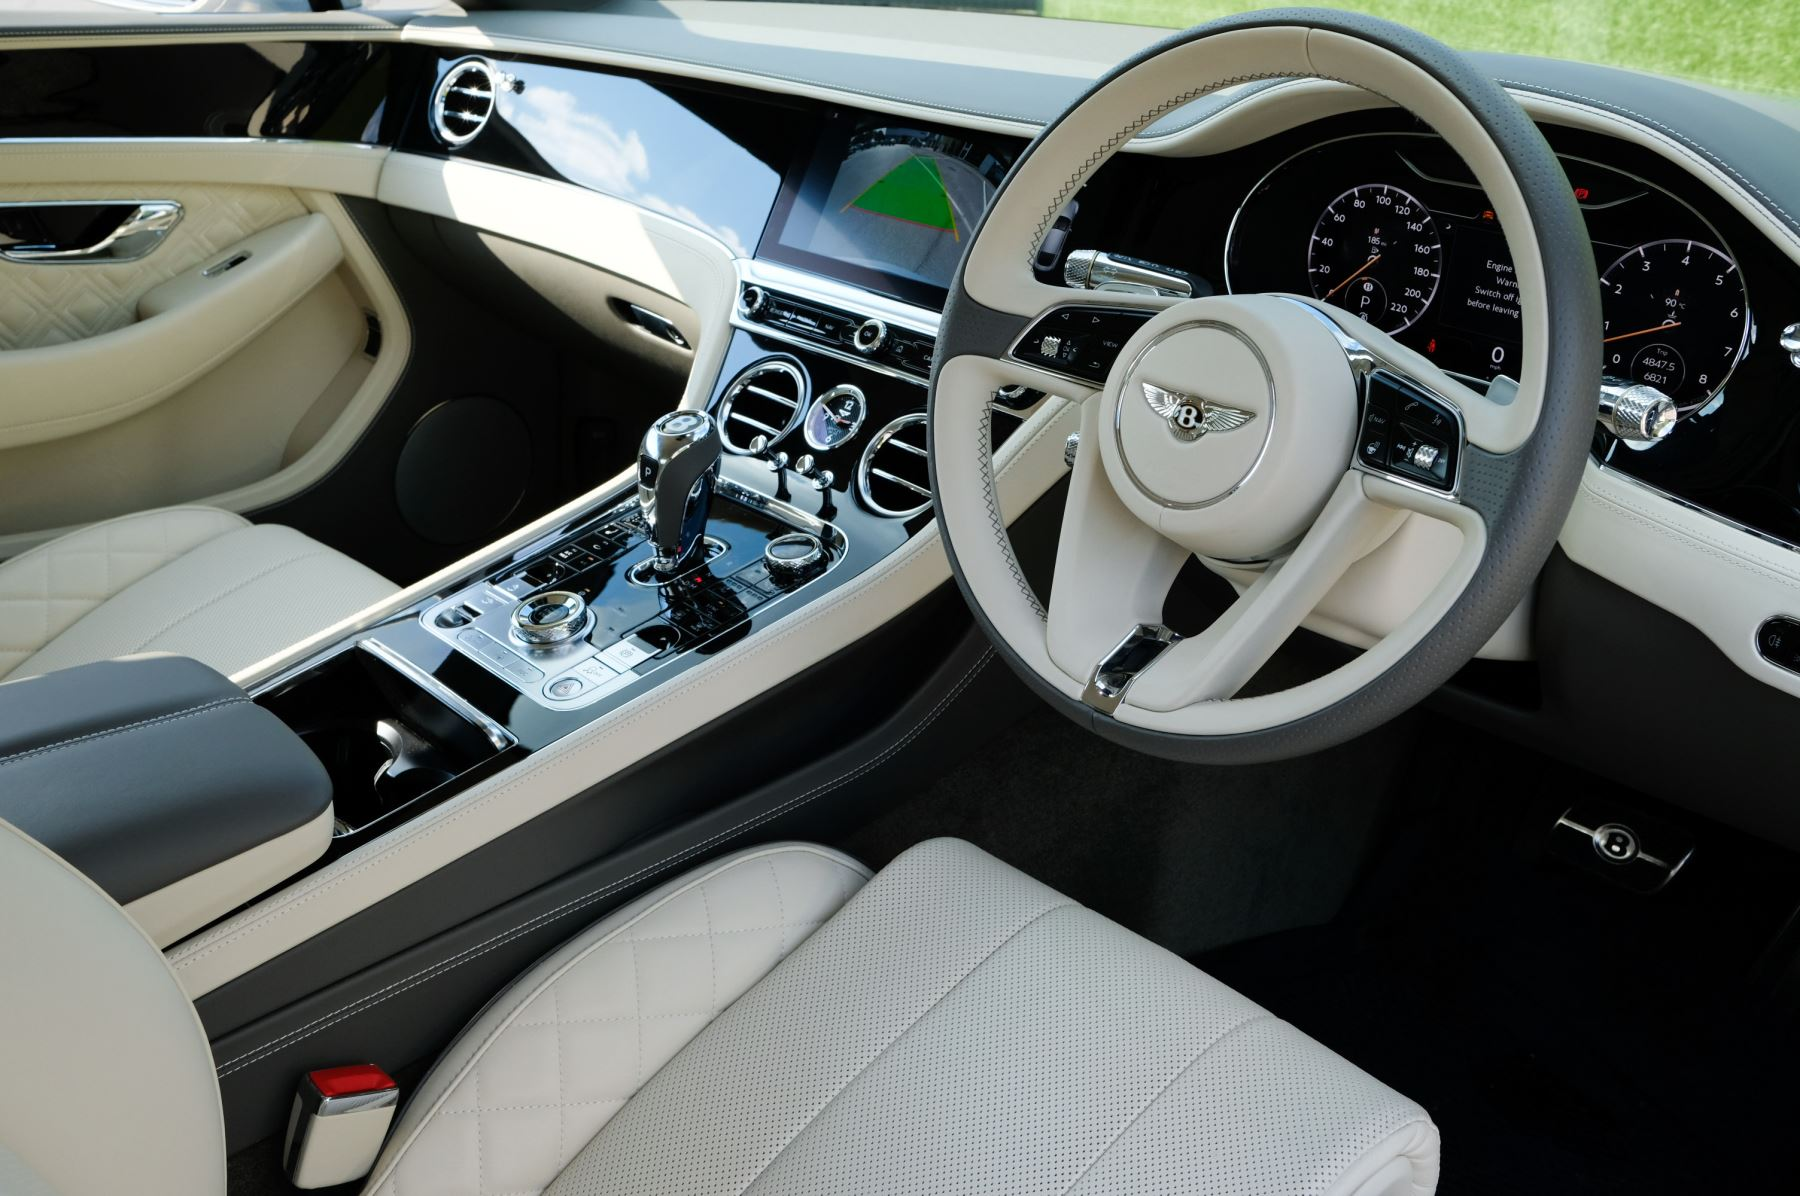 Bentley Continental GT 4.0 V8 - Mulliner Driving Specification with Black Painted Wheels - Touring and Centenary Spec image 12